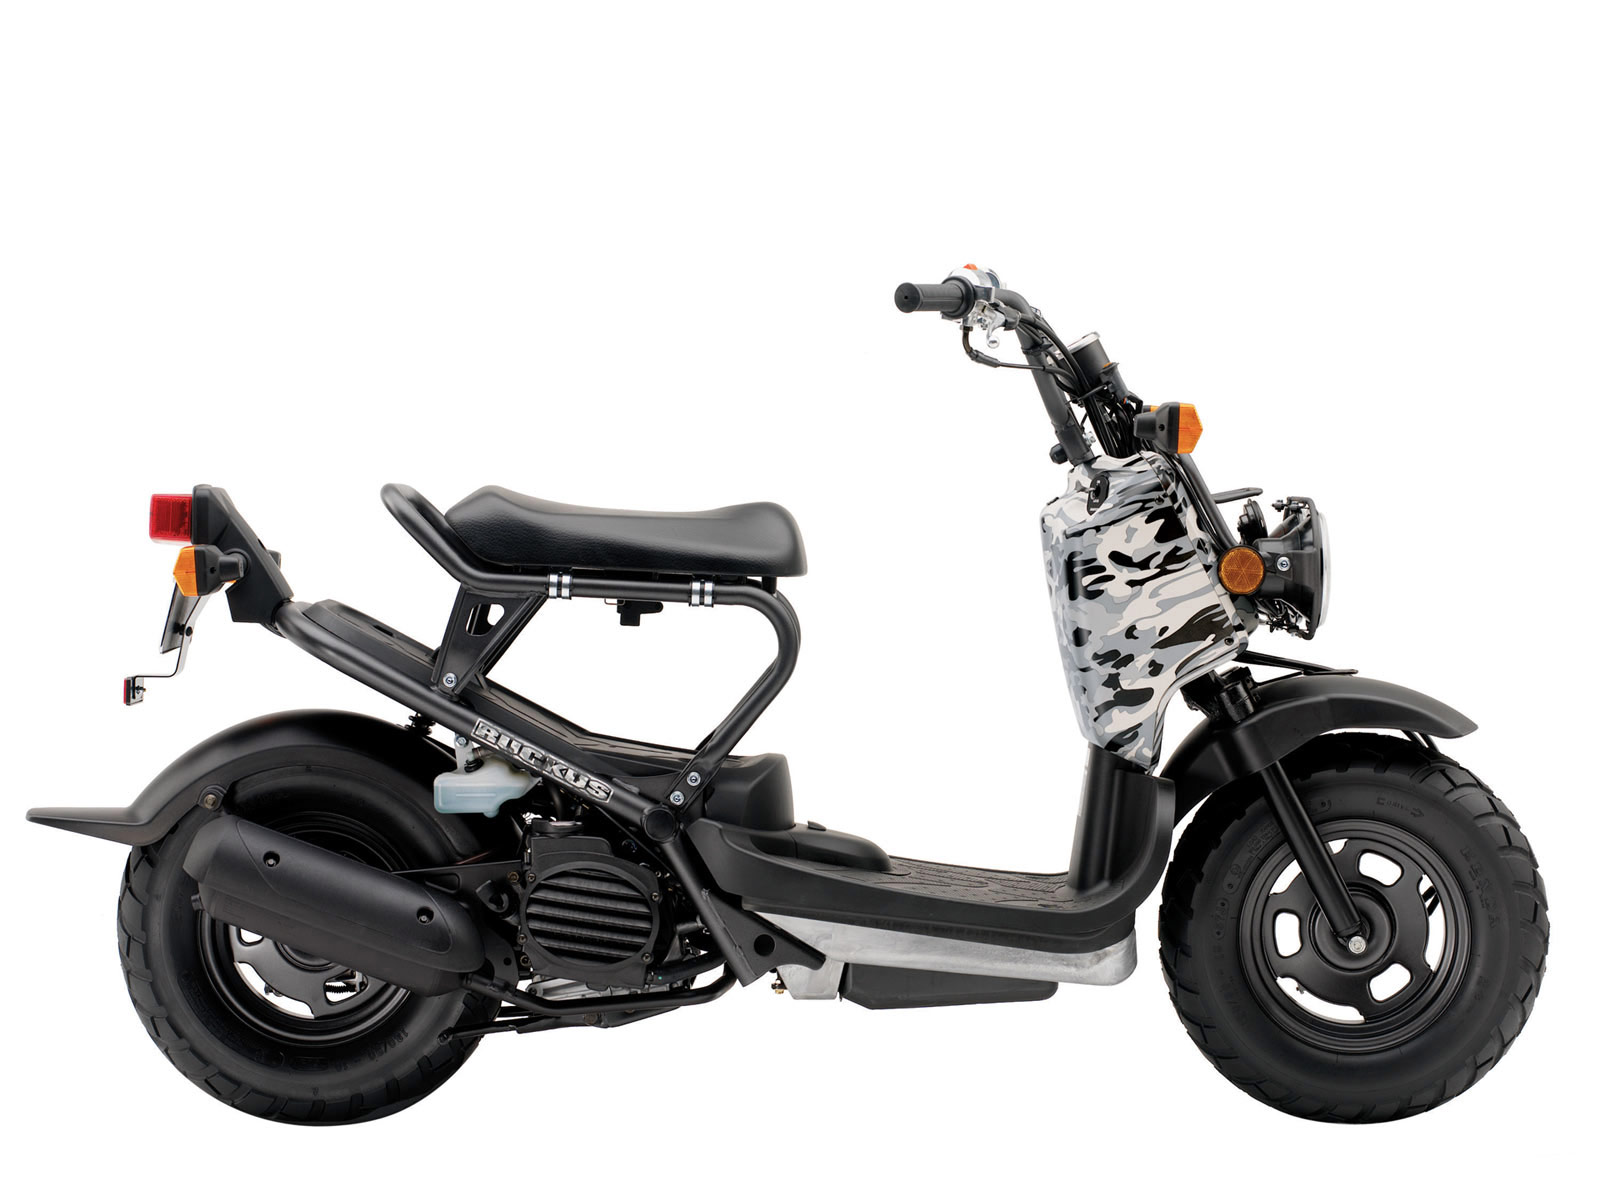 Honda Scooter Pictures 2005 Ruckus Accident Lawyers Info